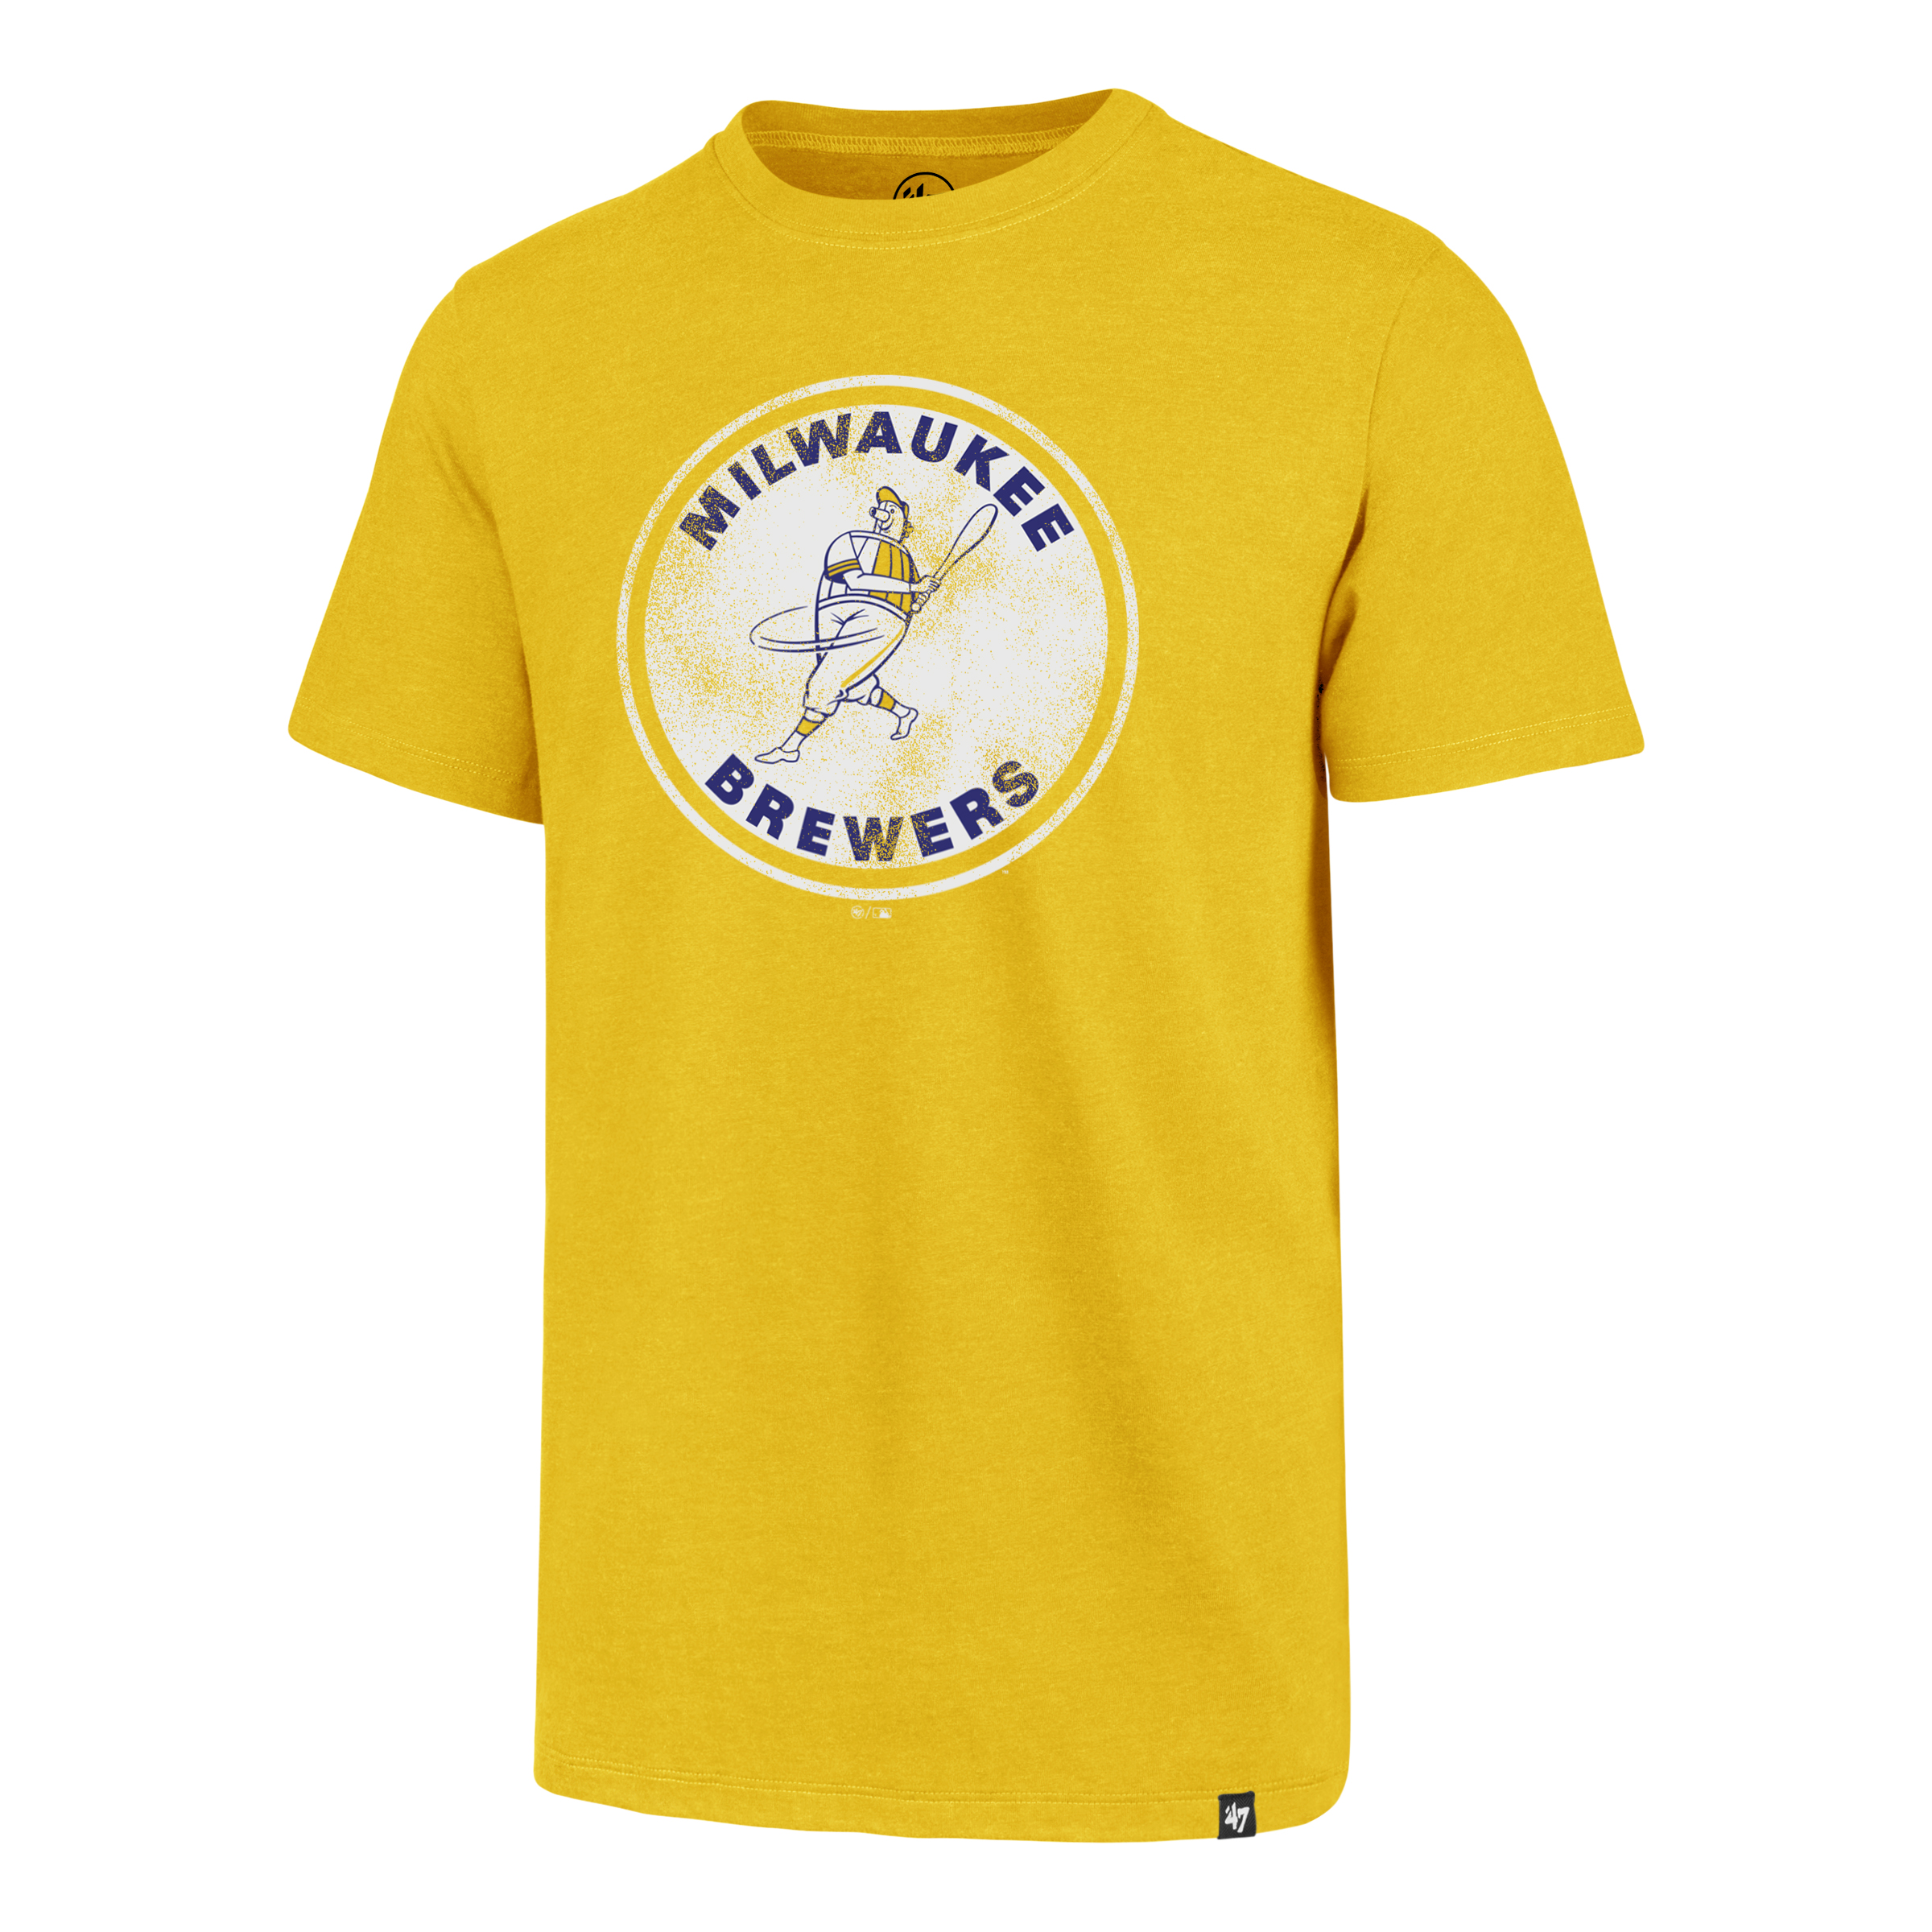 Brewers Throwback Clb Tee, Gold, Yellow, swatch